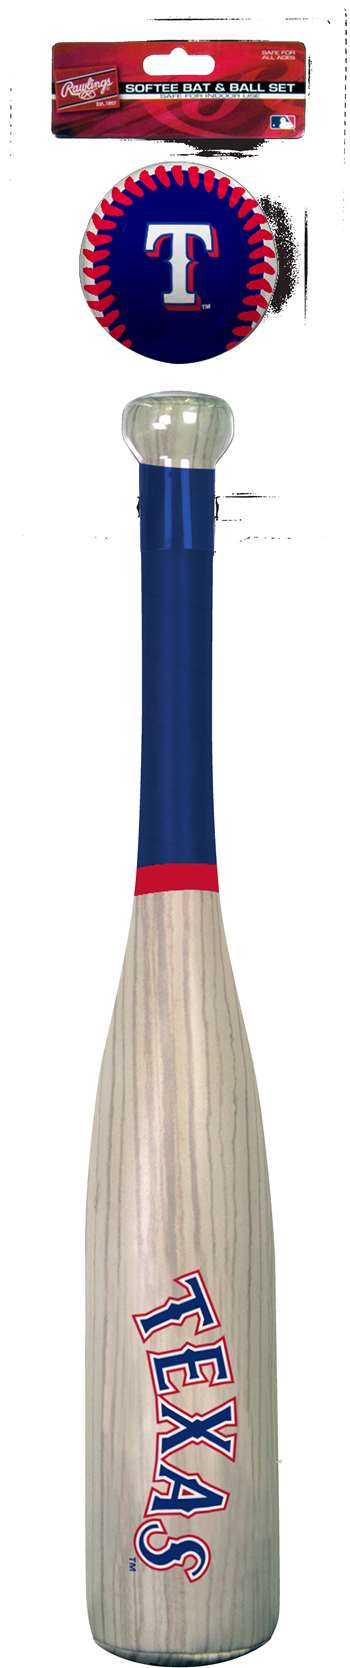 MLB Texas Rangers Grand Slam Softee Baseball Bat and Ball Set (Wood Grain)